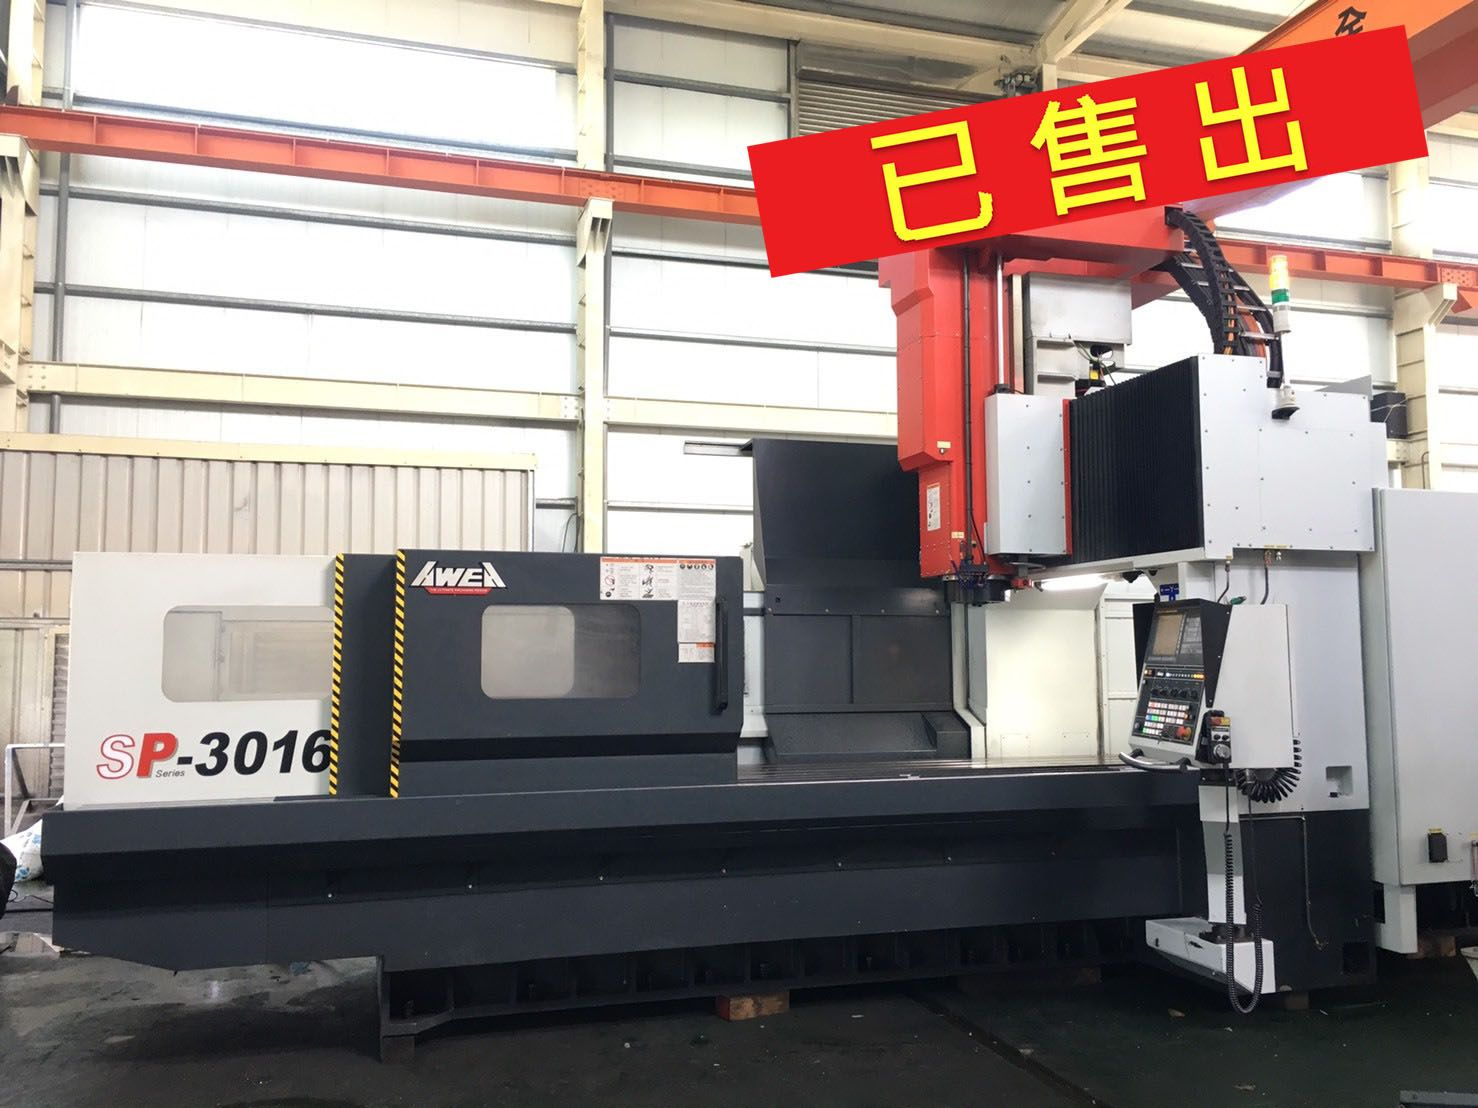 SP-3016 AWEA CNC DOUBLE COLUMN MACHINING CENTER